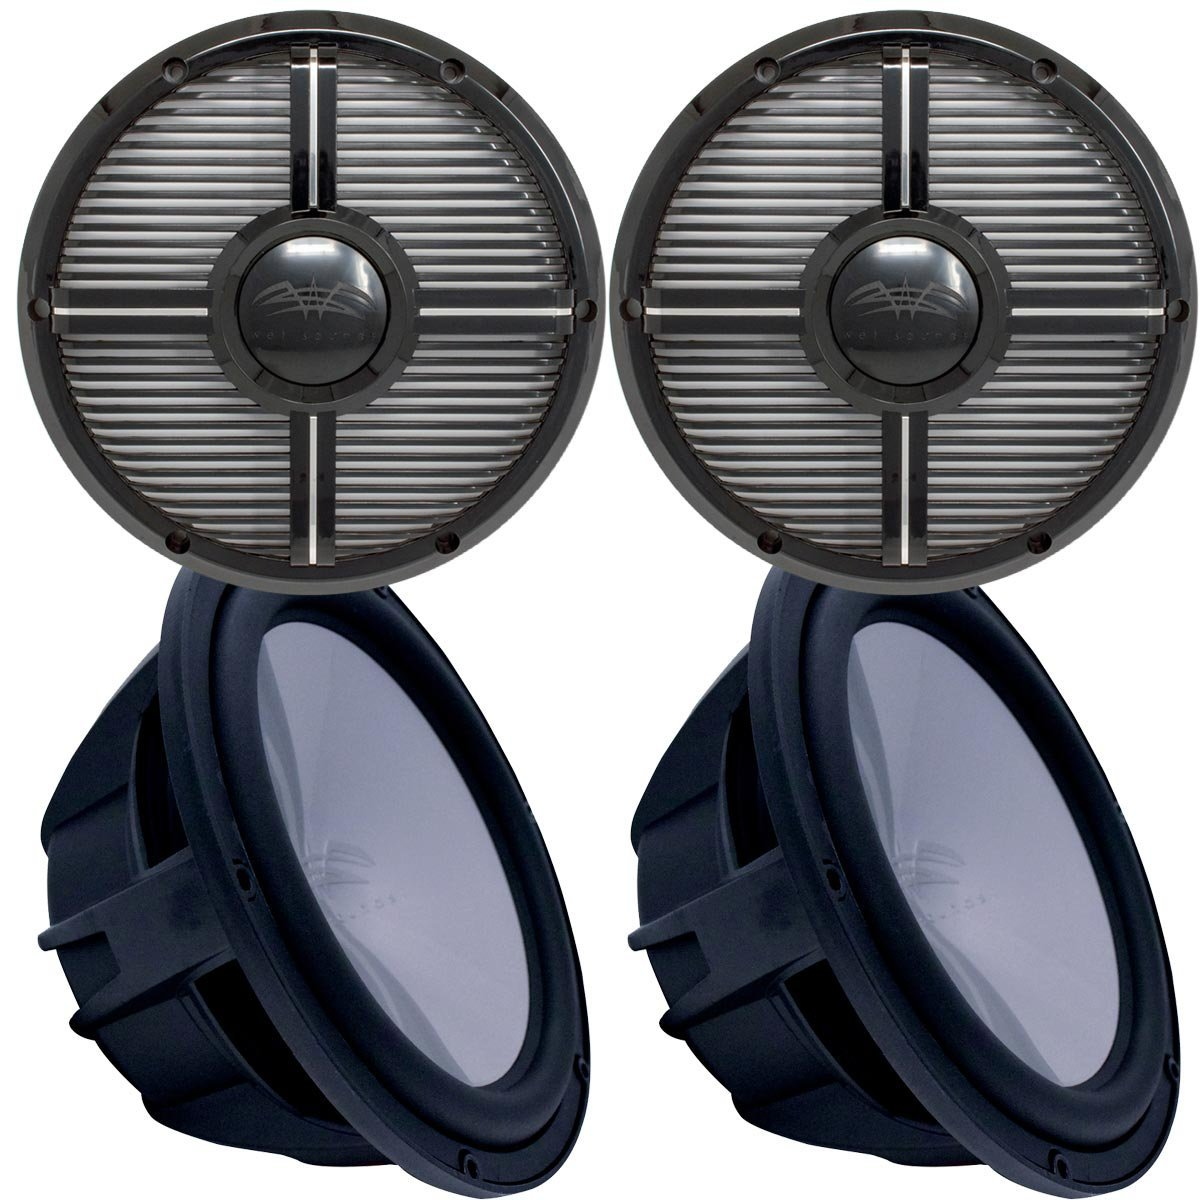 Two Wet Sounds Revo 12' Subwoofers & Grills - Black Subwoofers & Black Closed Face XW Grills - 2 Ohm